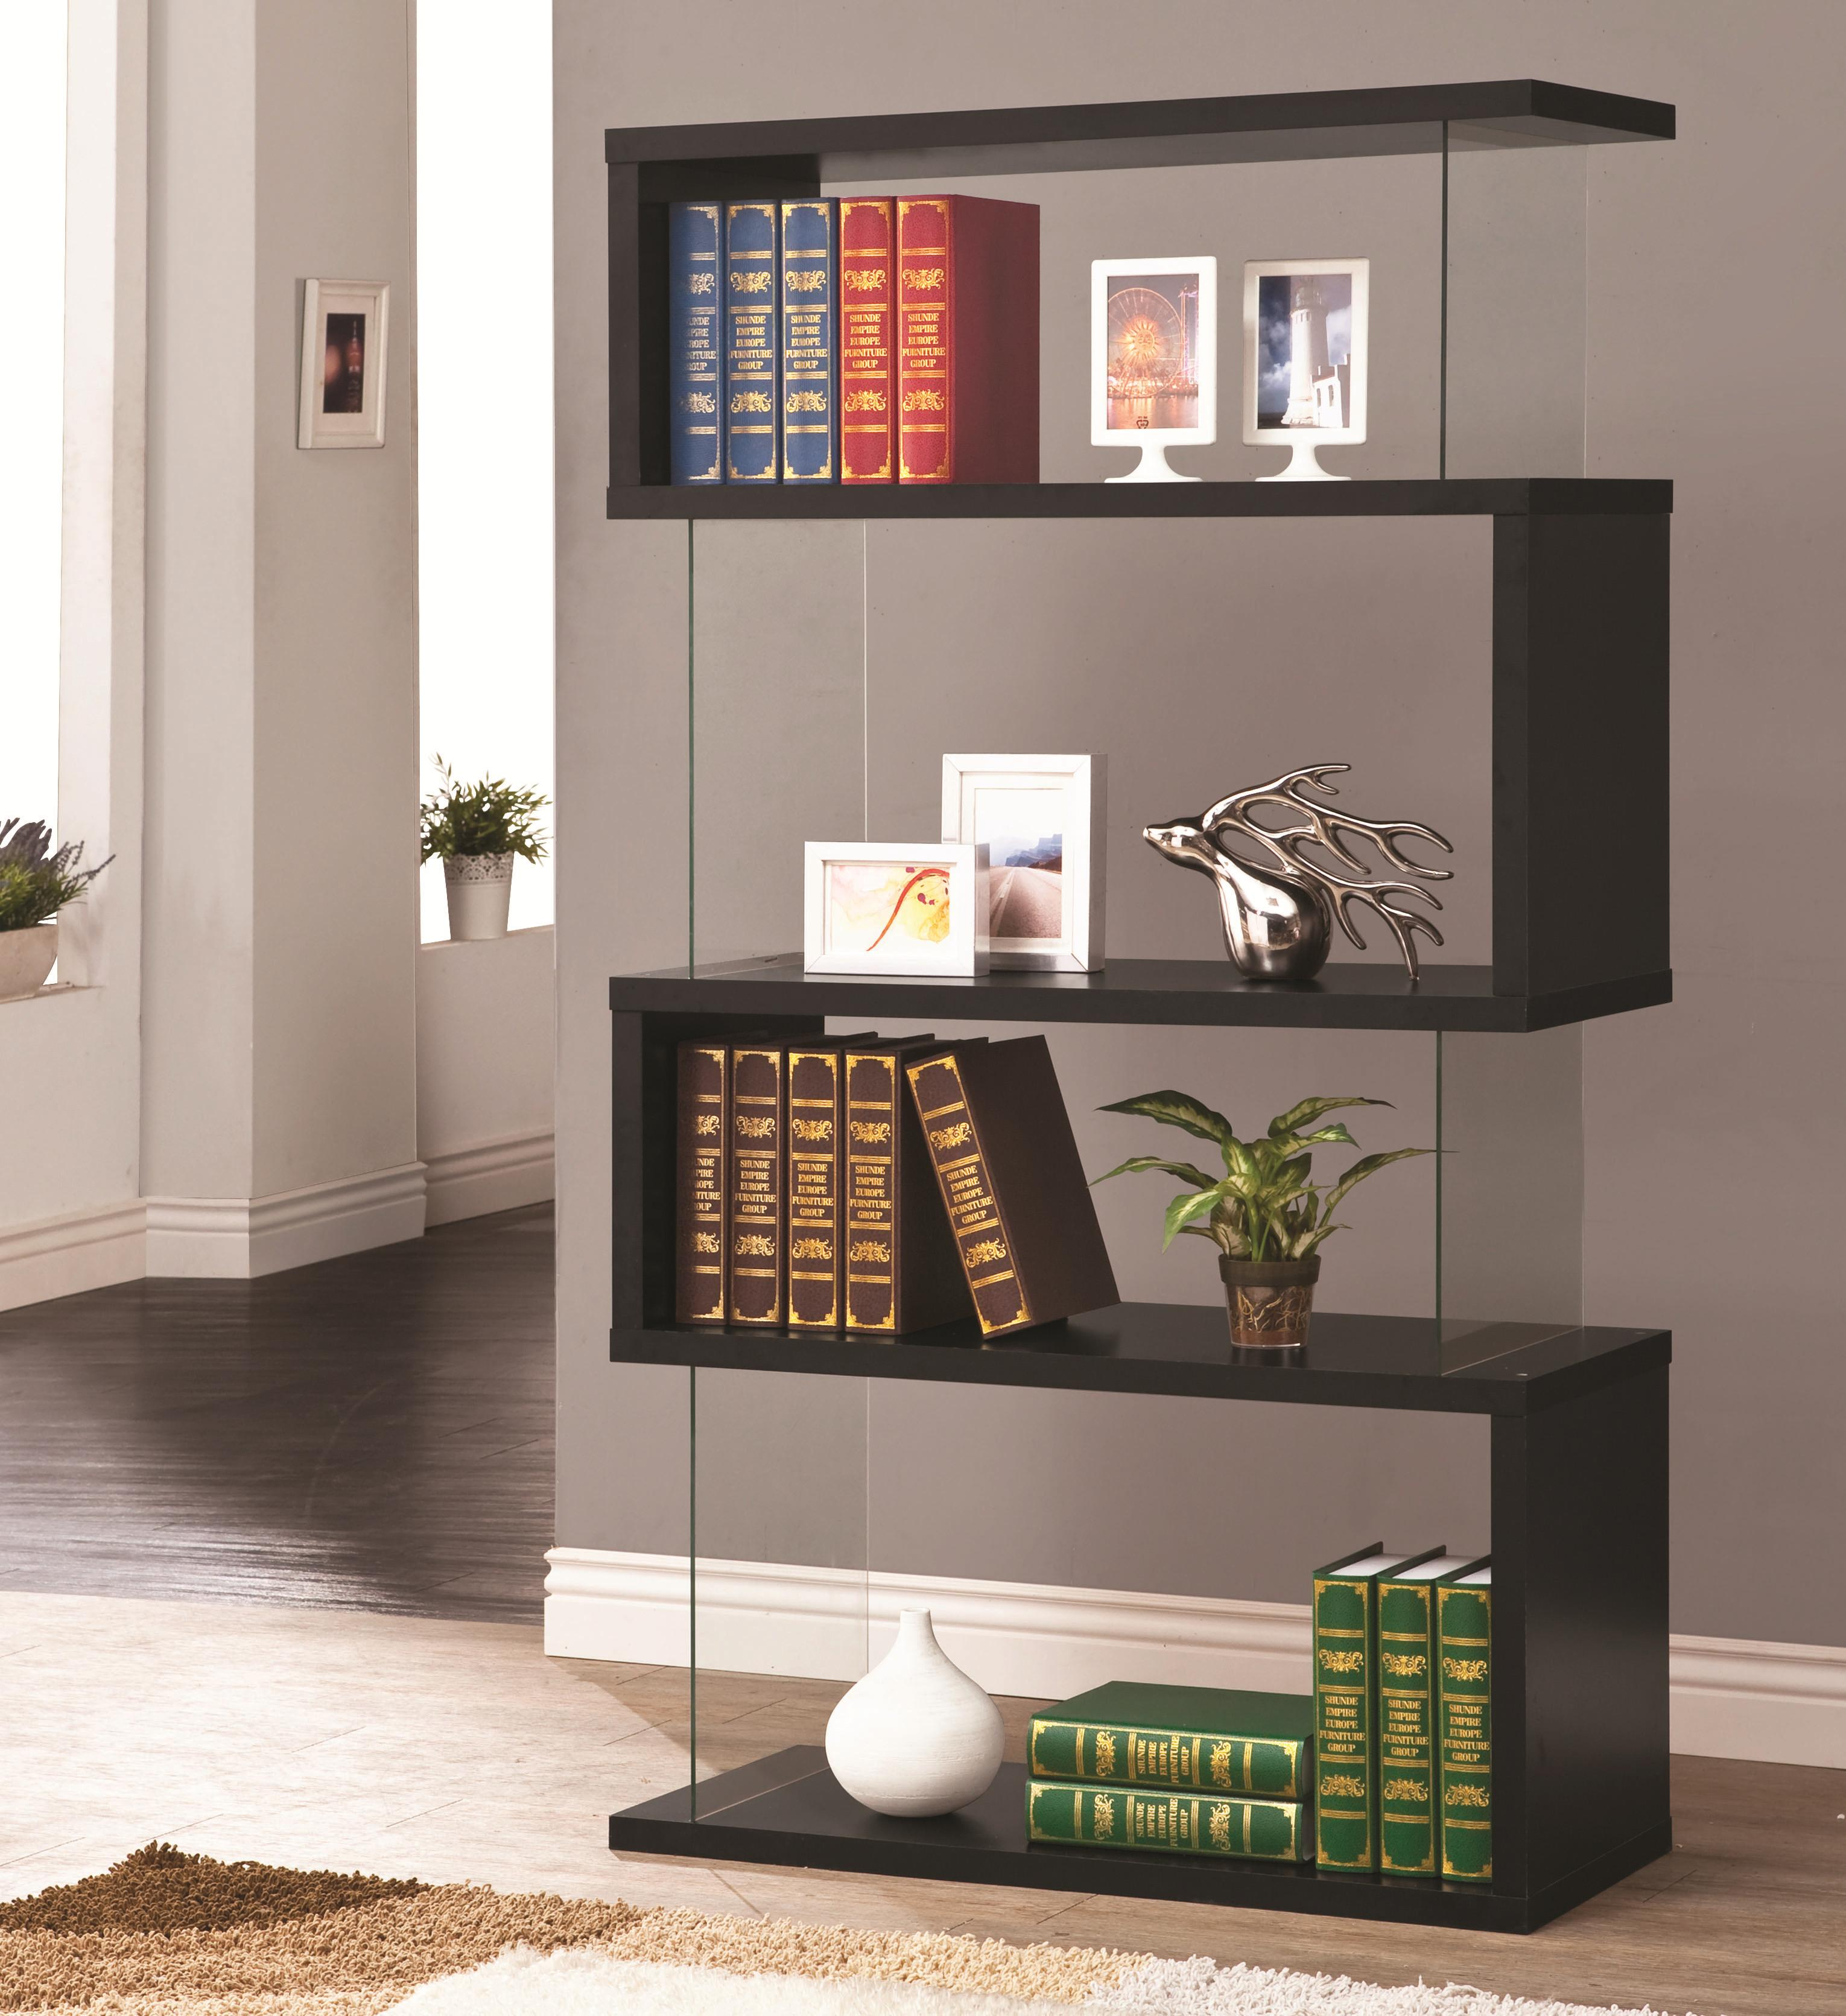 products_coaster_color_bookcases - coaster_800340-b0